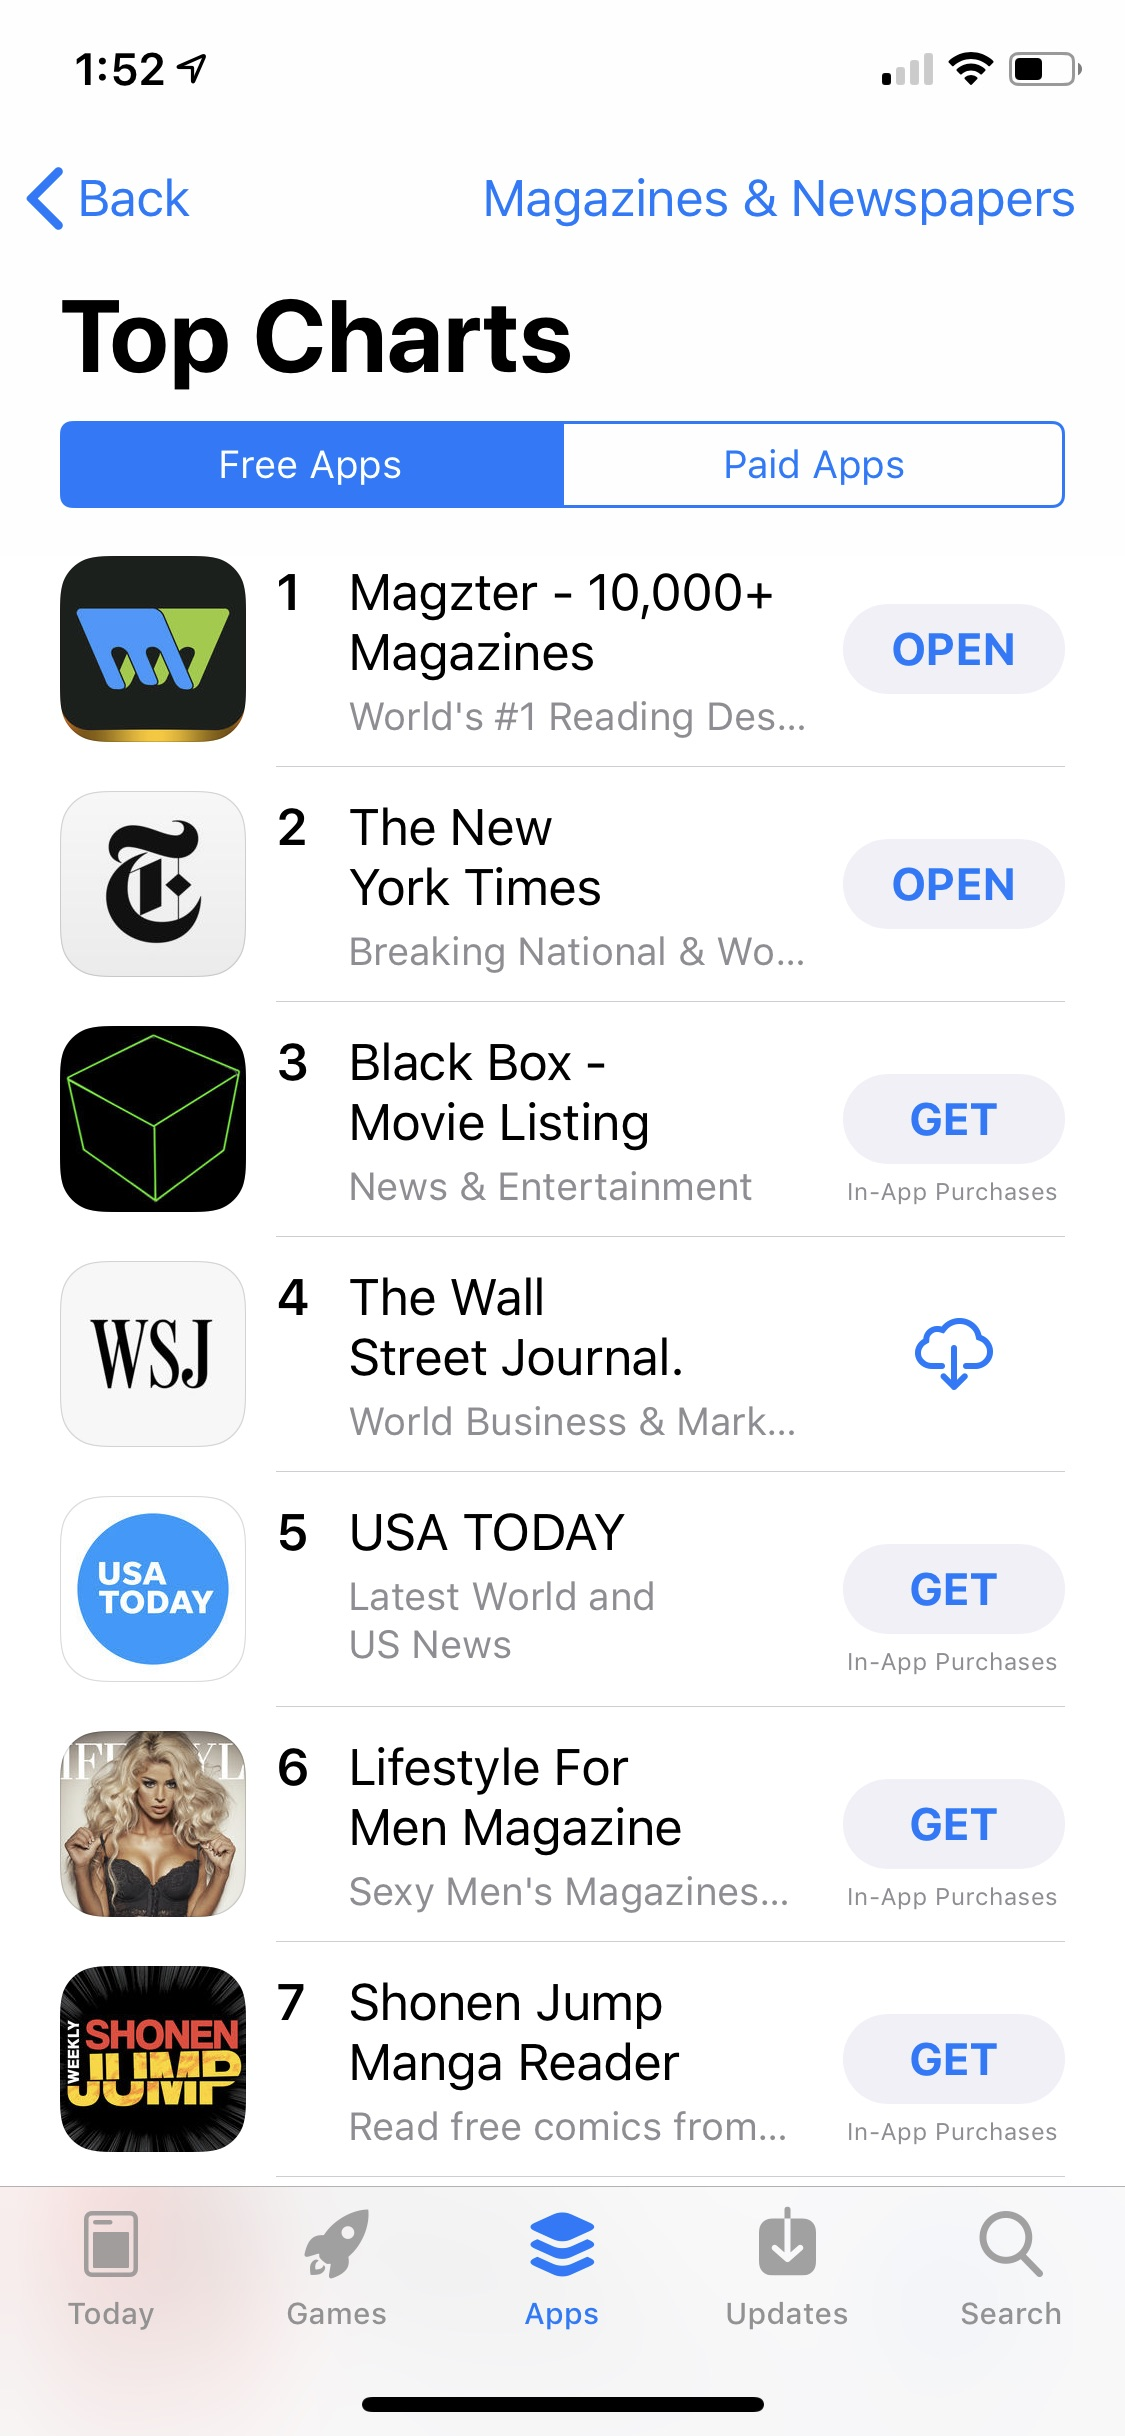 Magzter is ranked among the Top 10 iOS Apps Image